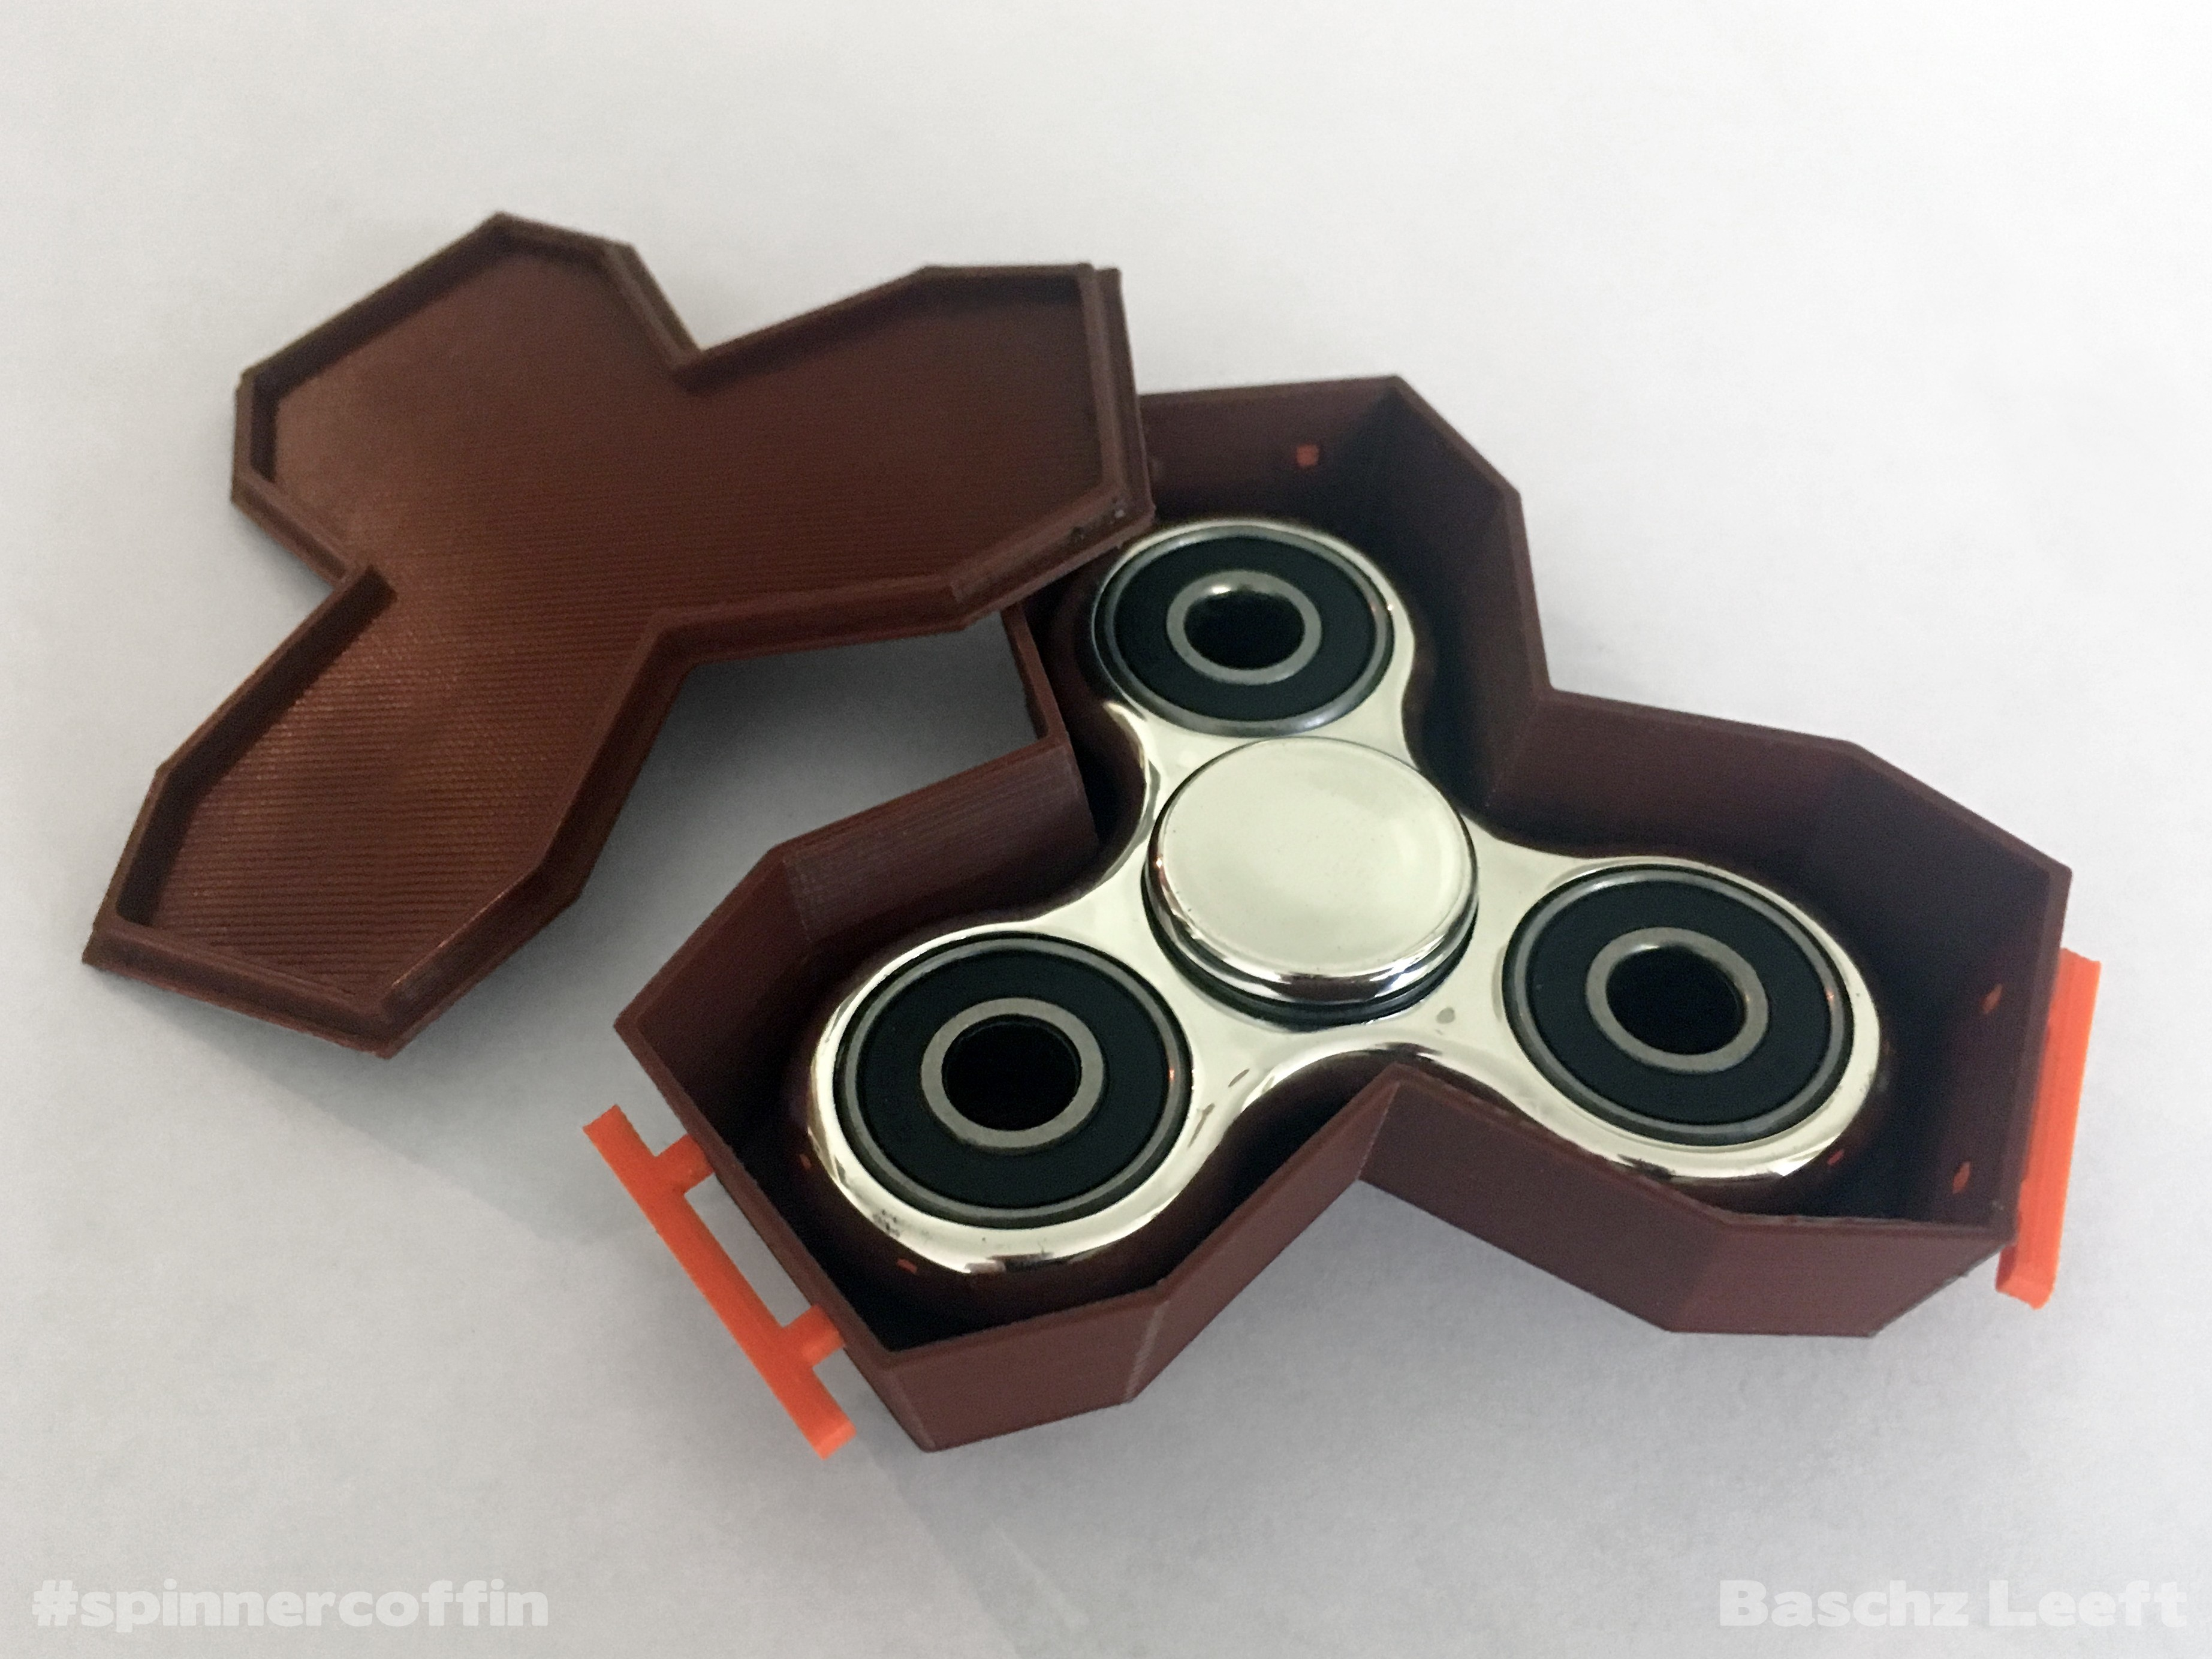 SPINNER-COFFIN_Baschz-Leeft-1.jpg Download free STL file SPINNER COFFIN - Accommodating the Death of Fidget Spinners • 3D print model, baschz